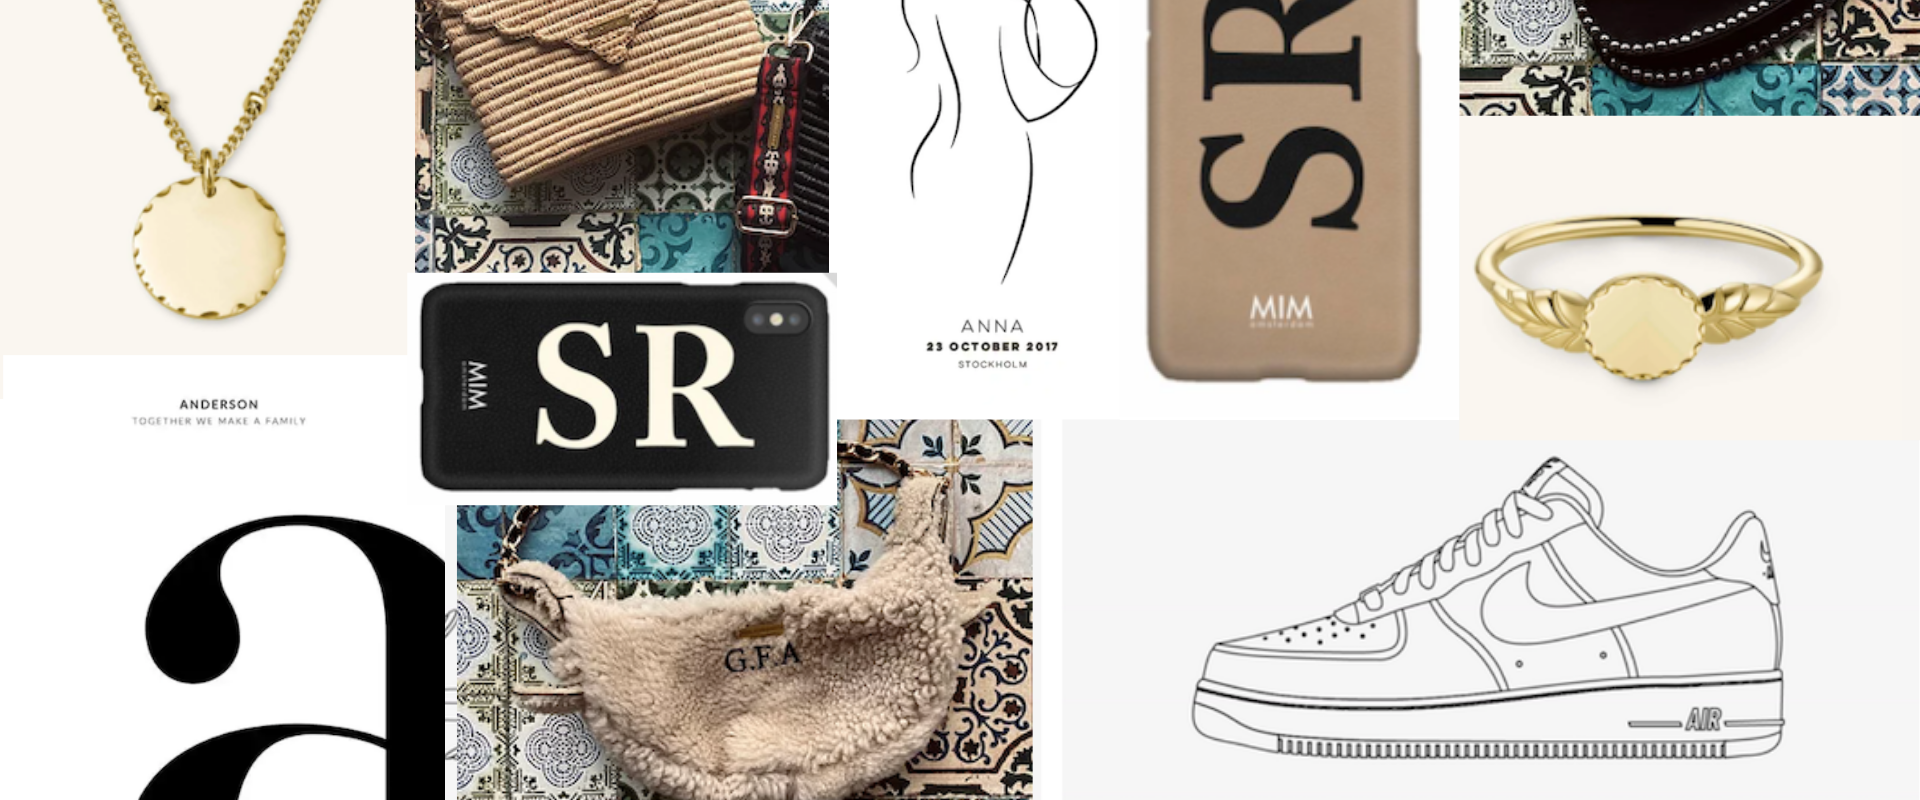 HOLIDAY GIFT GUIDE - PERSONALISED GIFTS